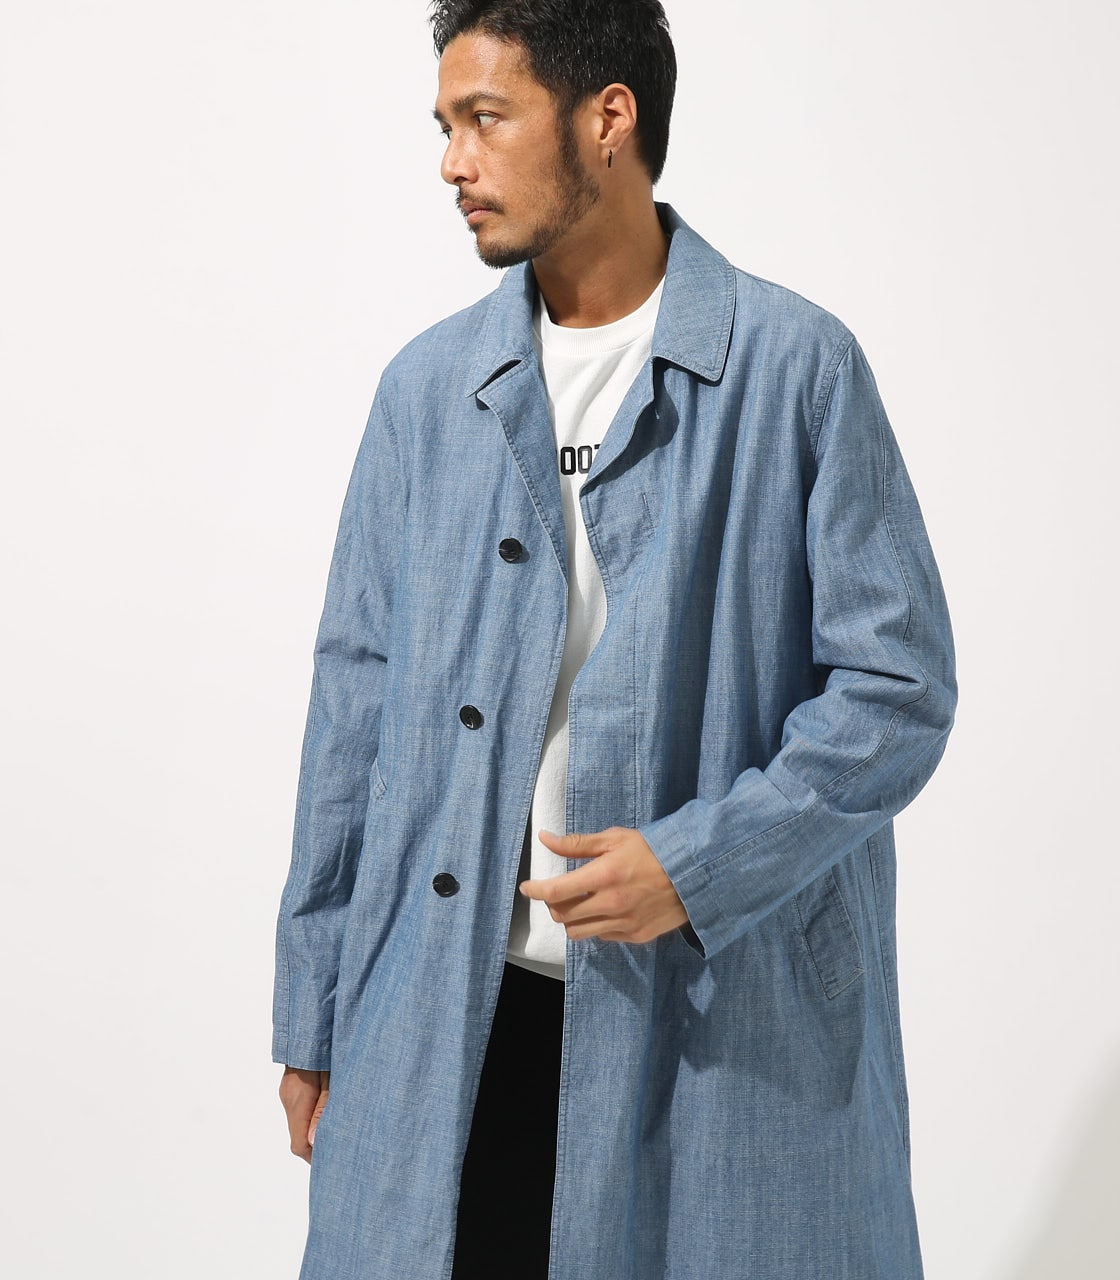 【AZUL BY MOUSSY】SOUTIEN COLLAR LONG COAT 詳細画像 BLU 4